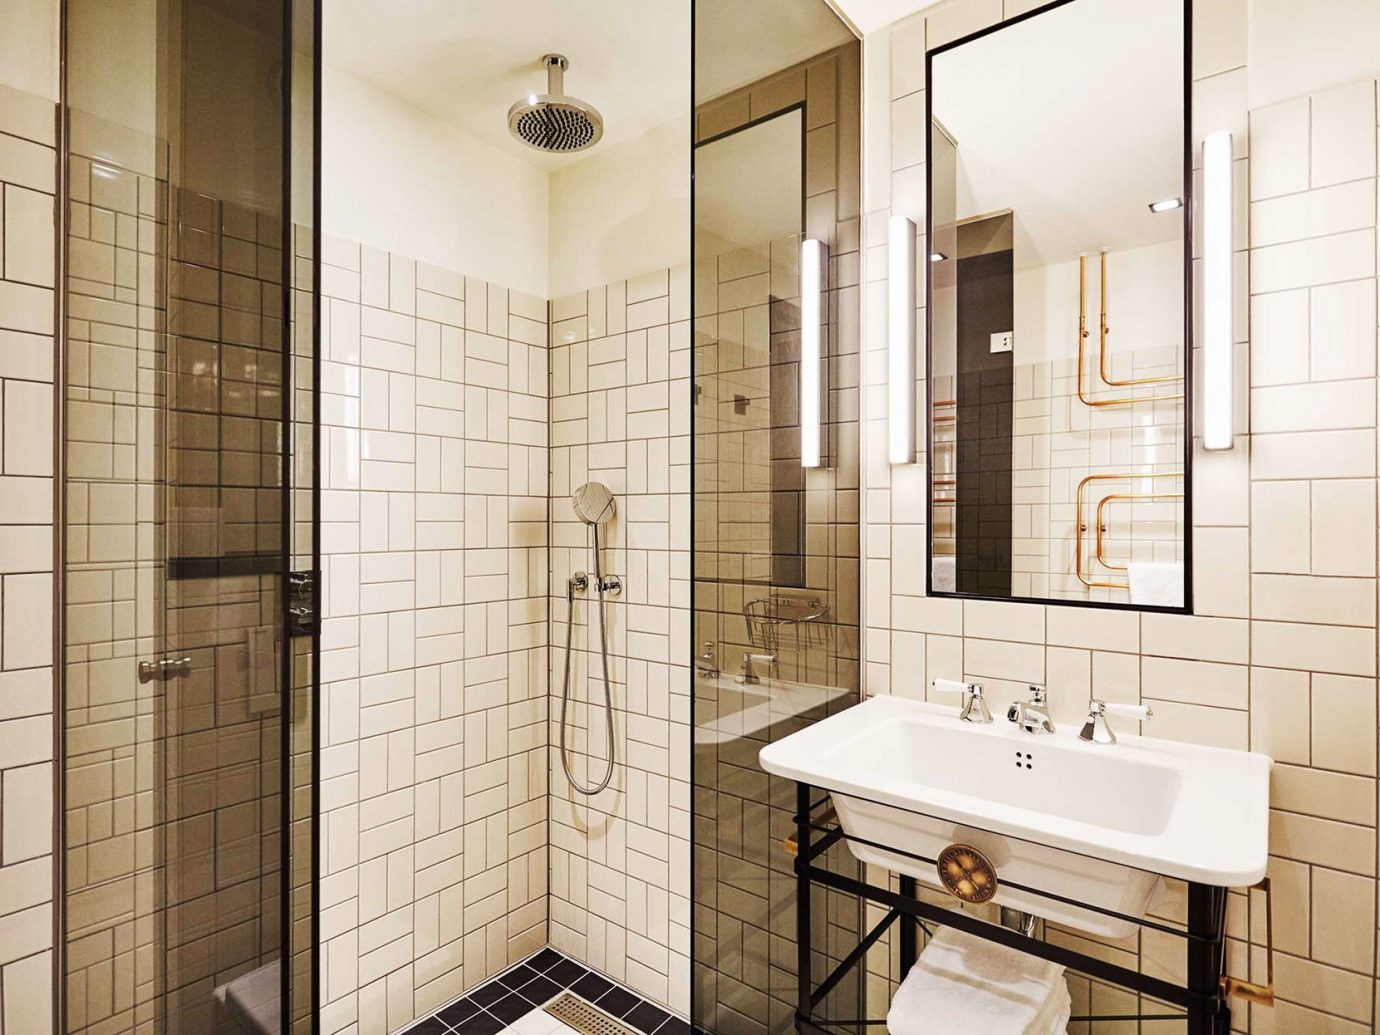 Amsterdam Boutique Hotels Hotels The Netherlands bathroom indoor wall room property sink floor plumbing fixture interior design flooring tile estate apartment tiled tan